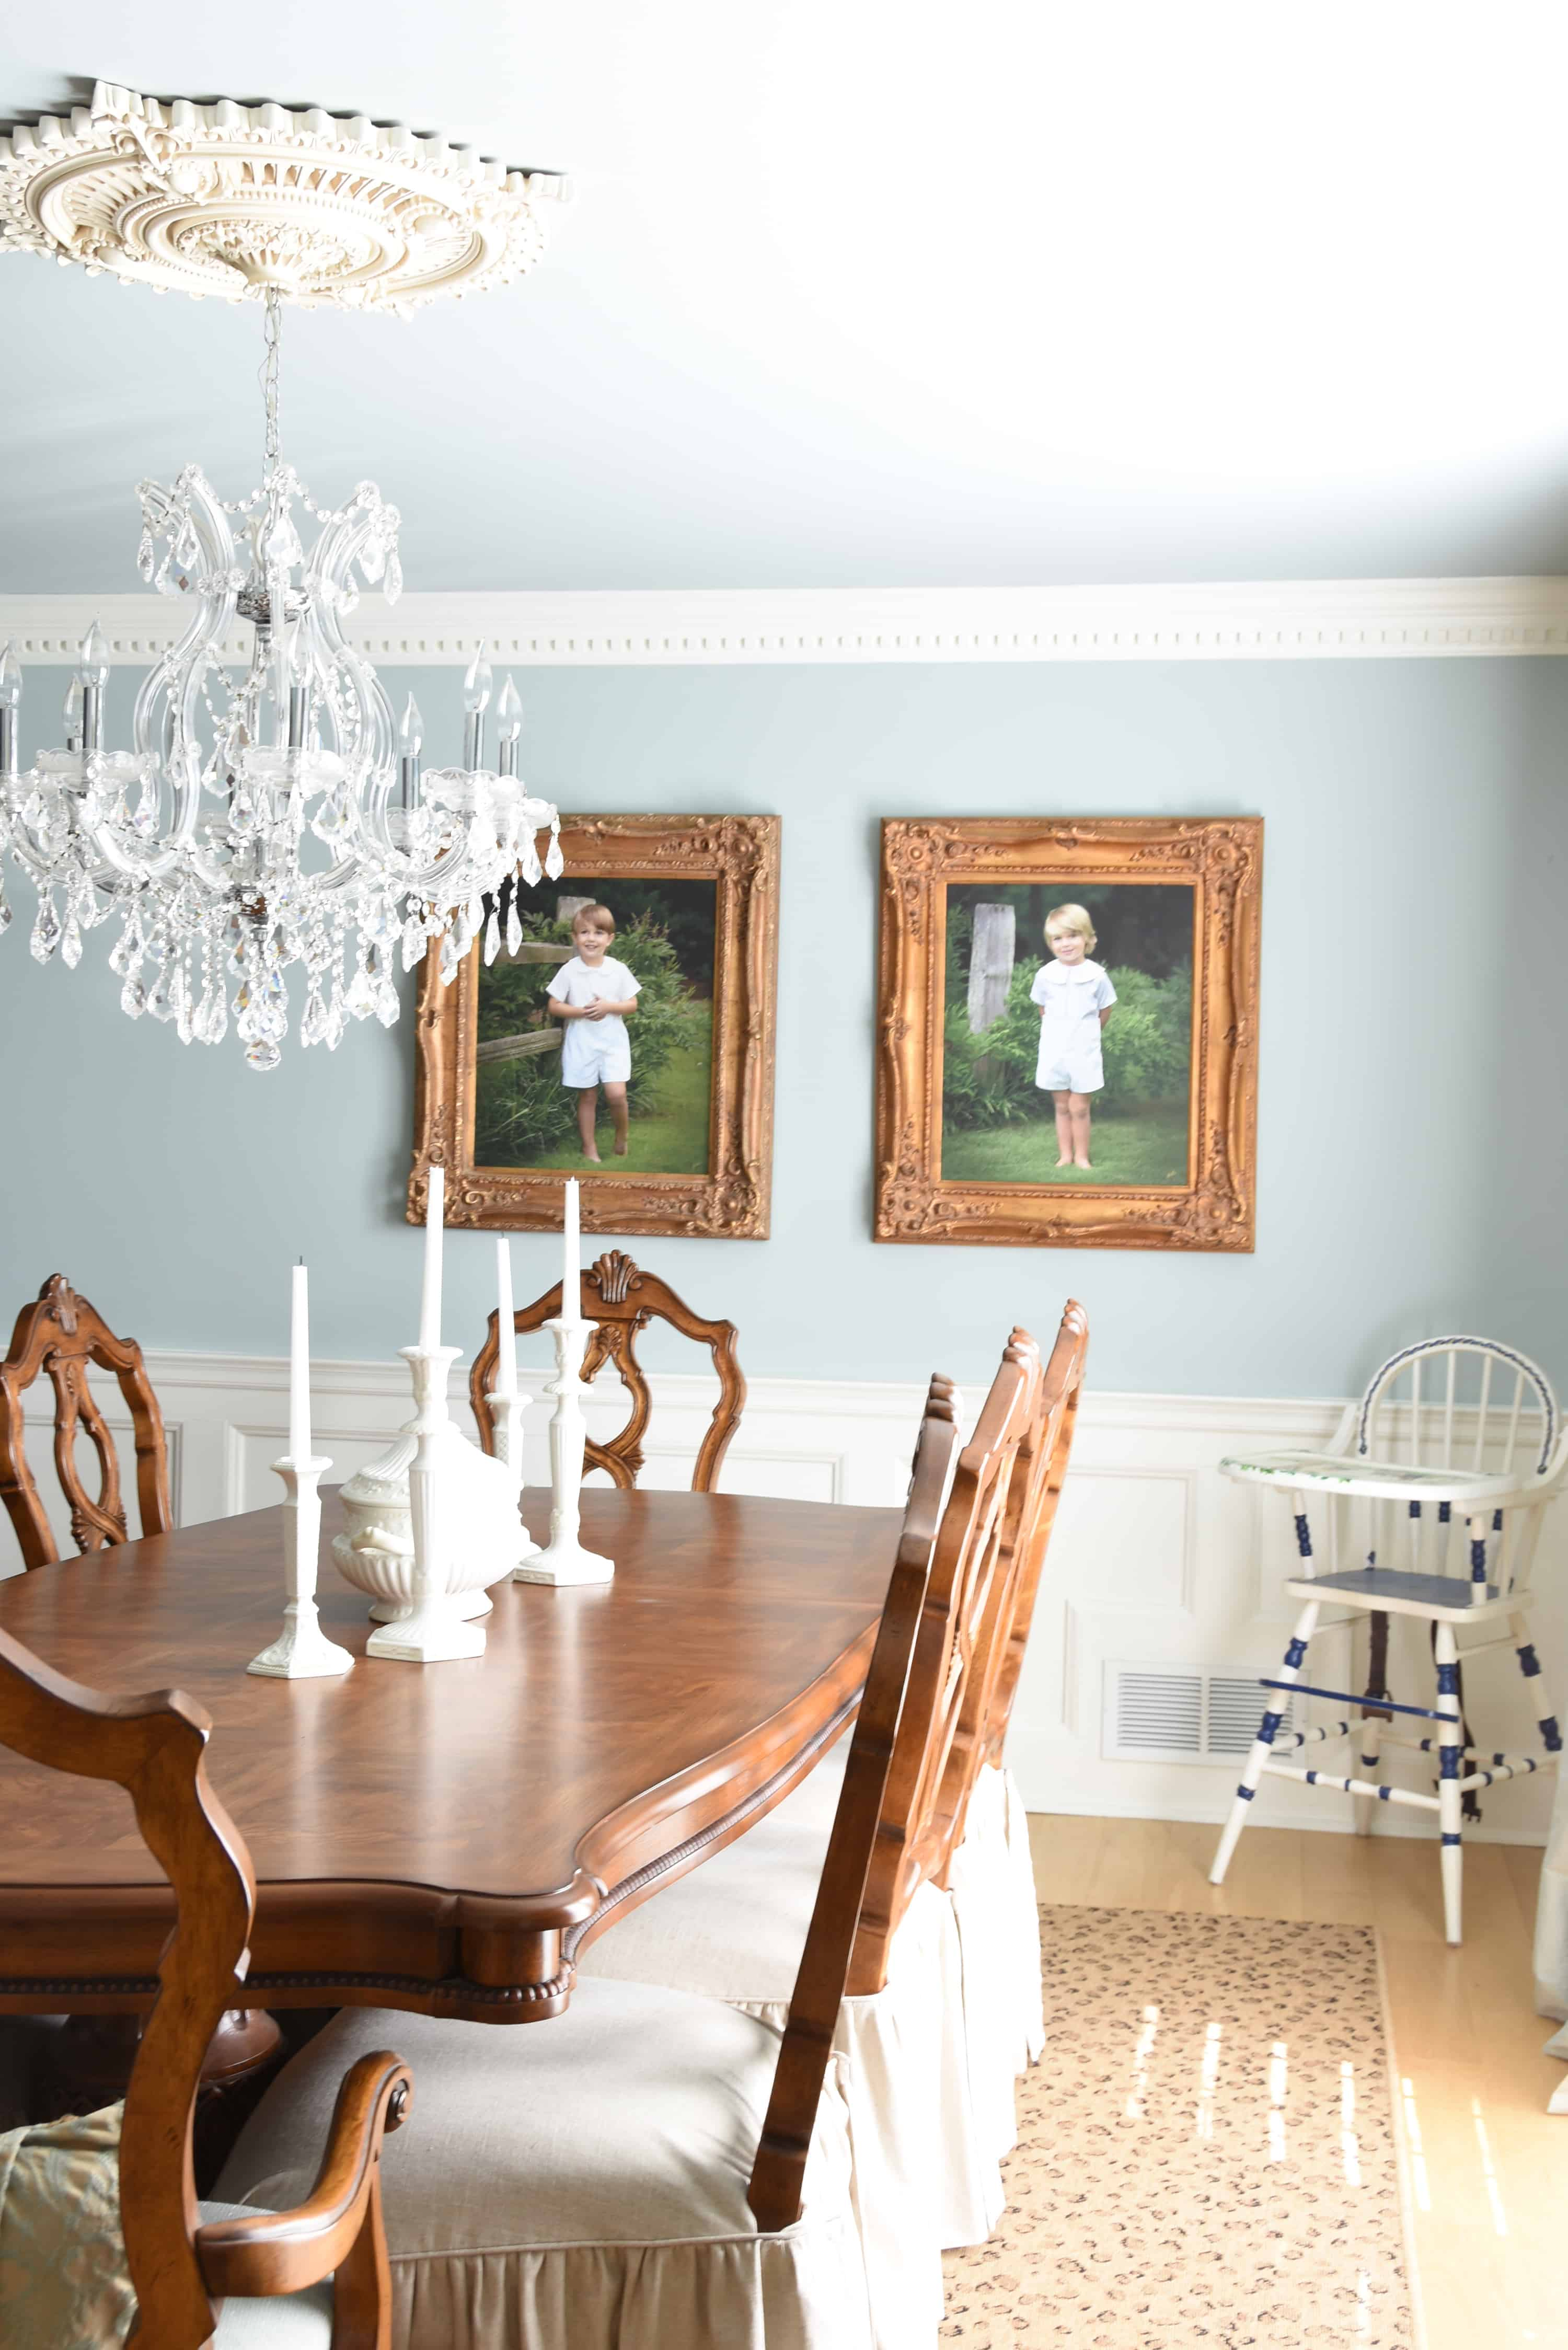 The Delightful Home {Dining Room} – Dixie Delights